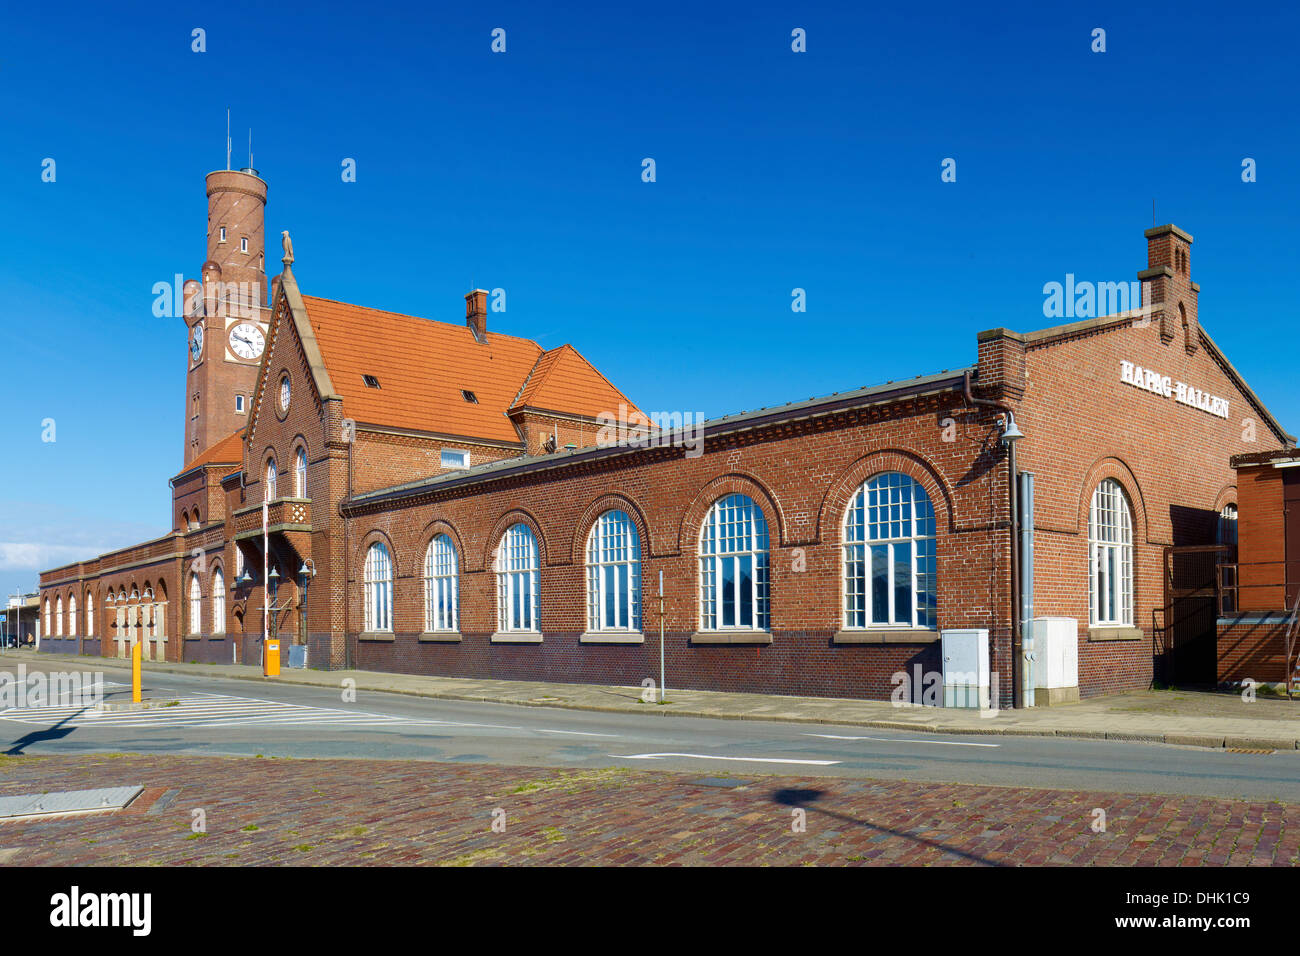 The Steubenhöft with Hapag halls, Cuxhaven, Lower Saxony, Germany - Stock Image